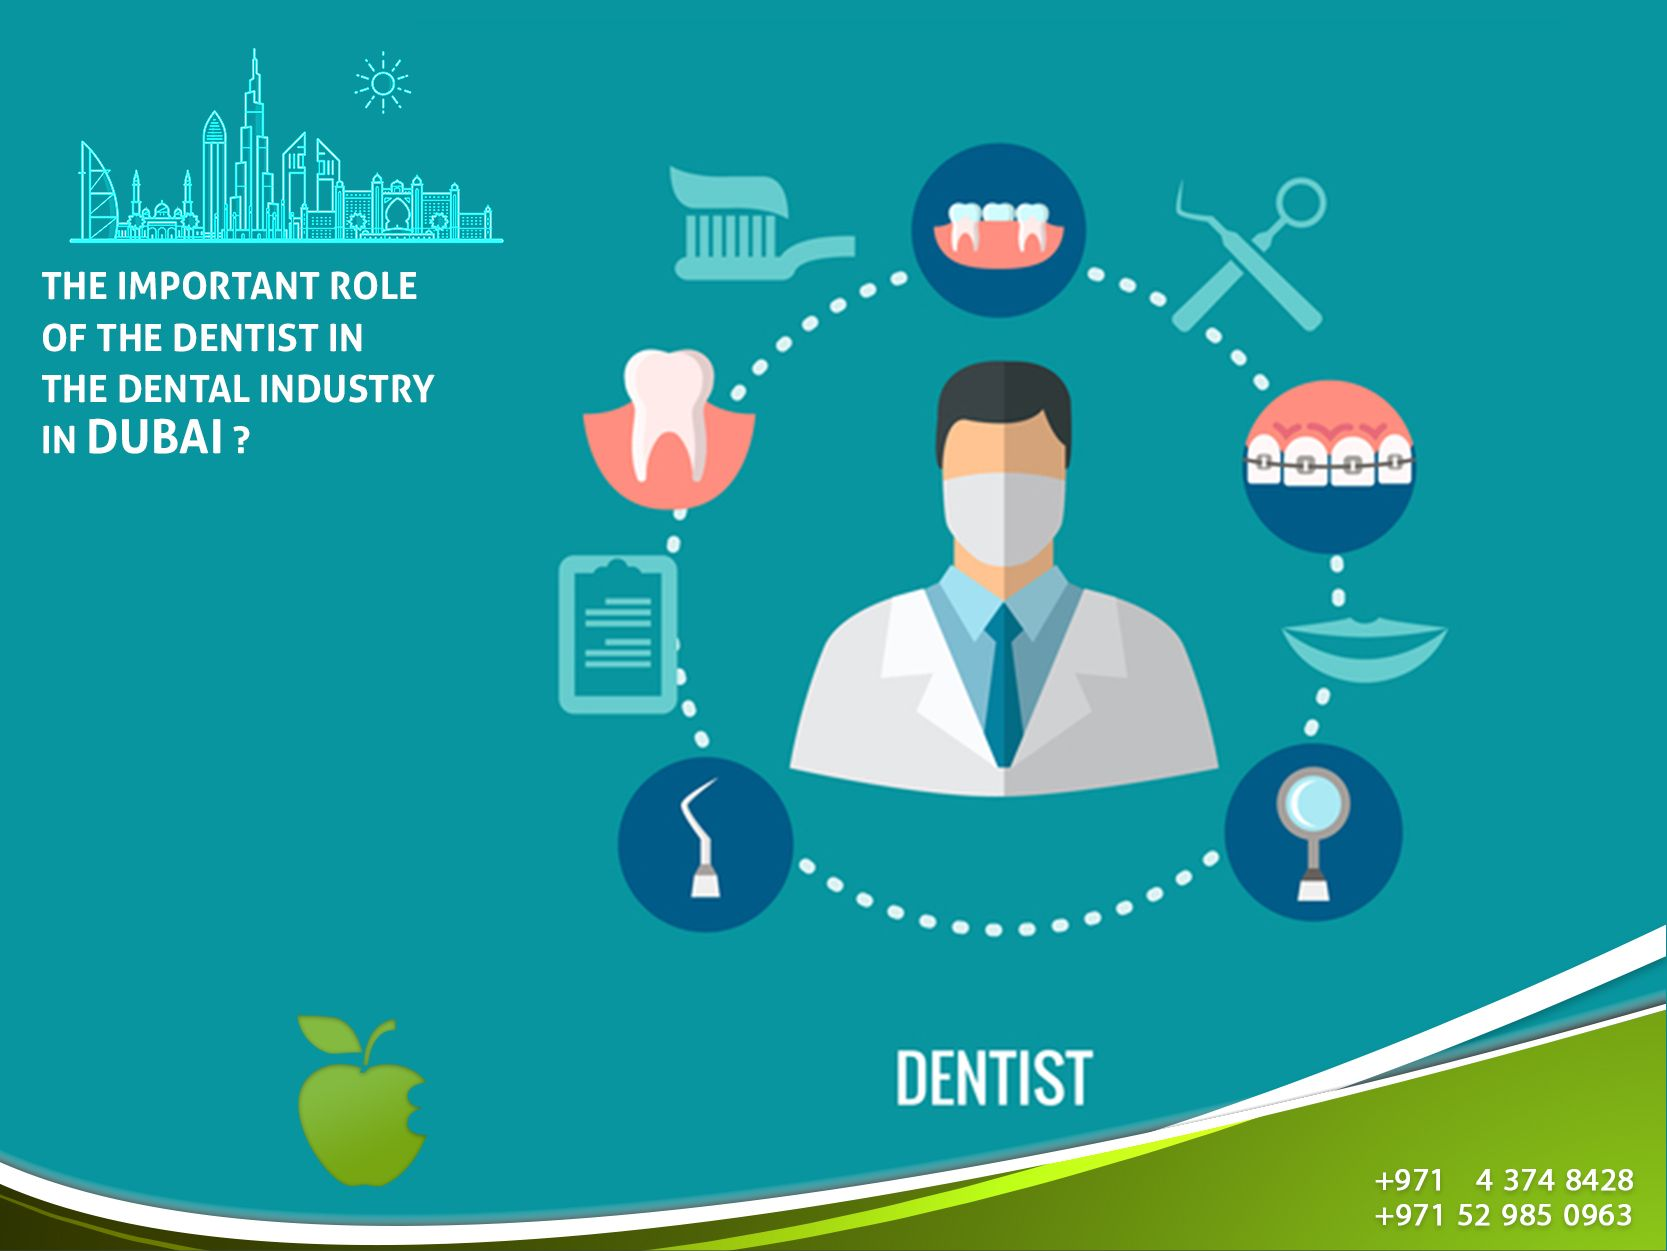 The Important Role of the Dentist in the Dental Industry